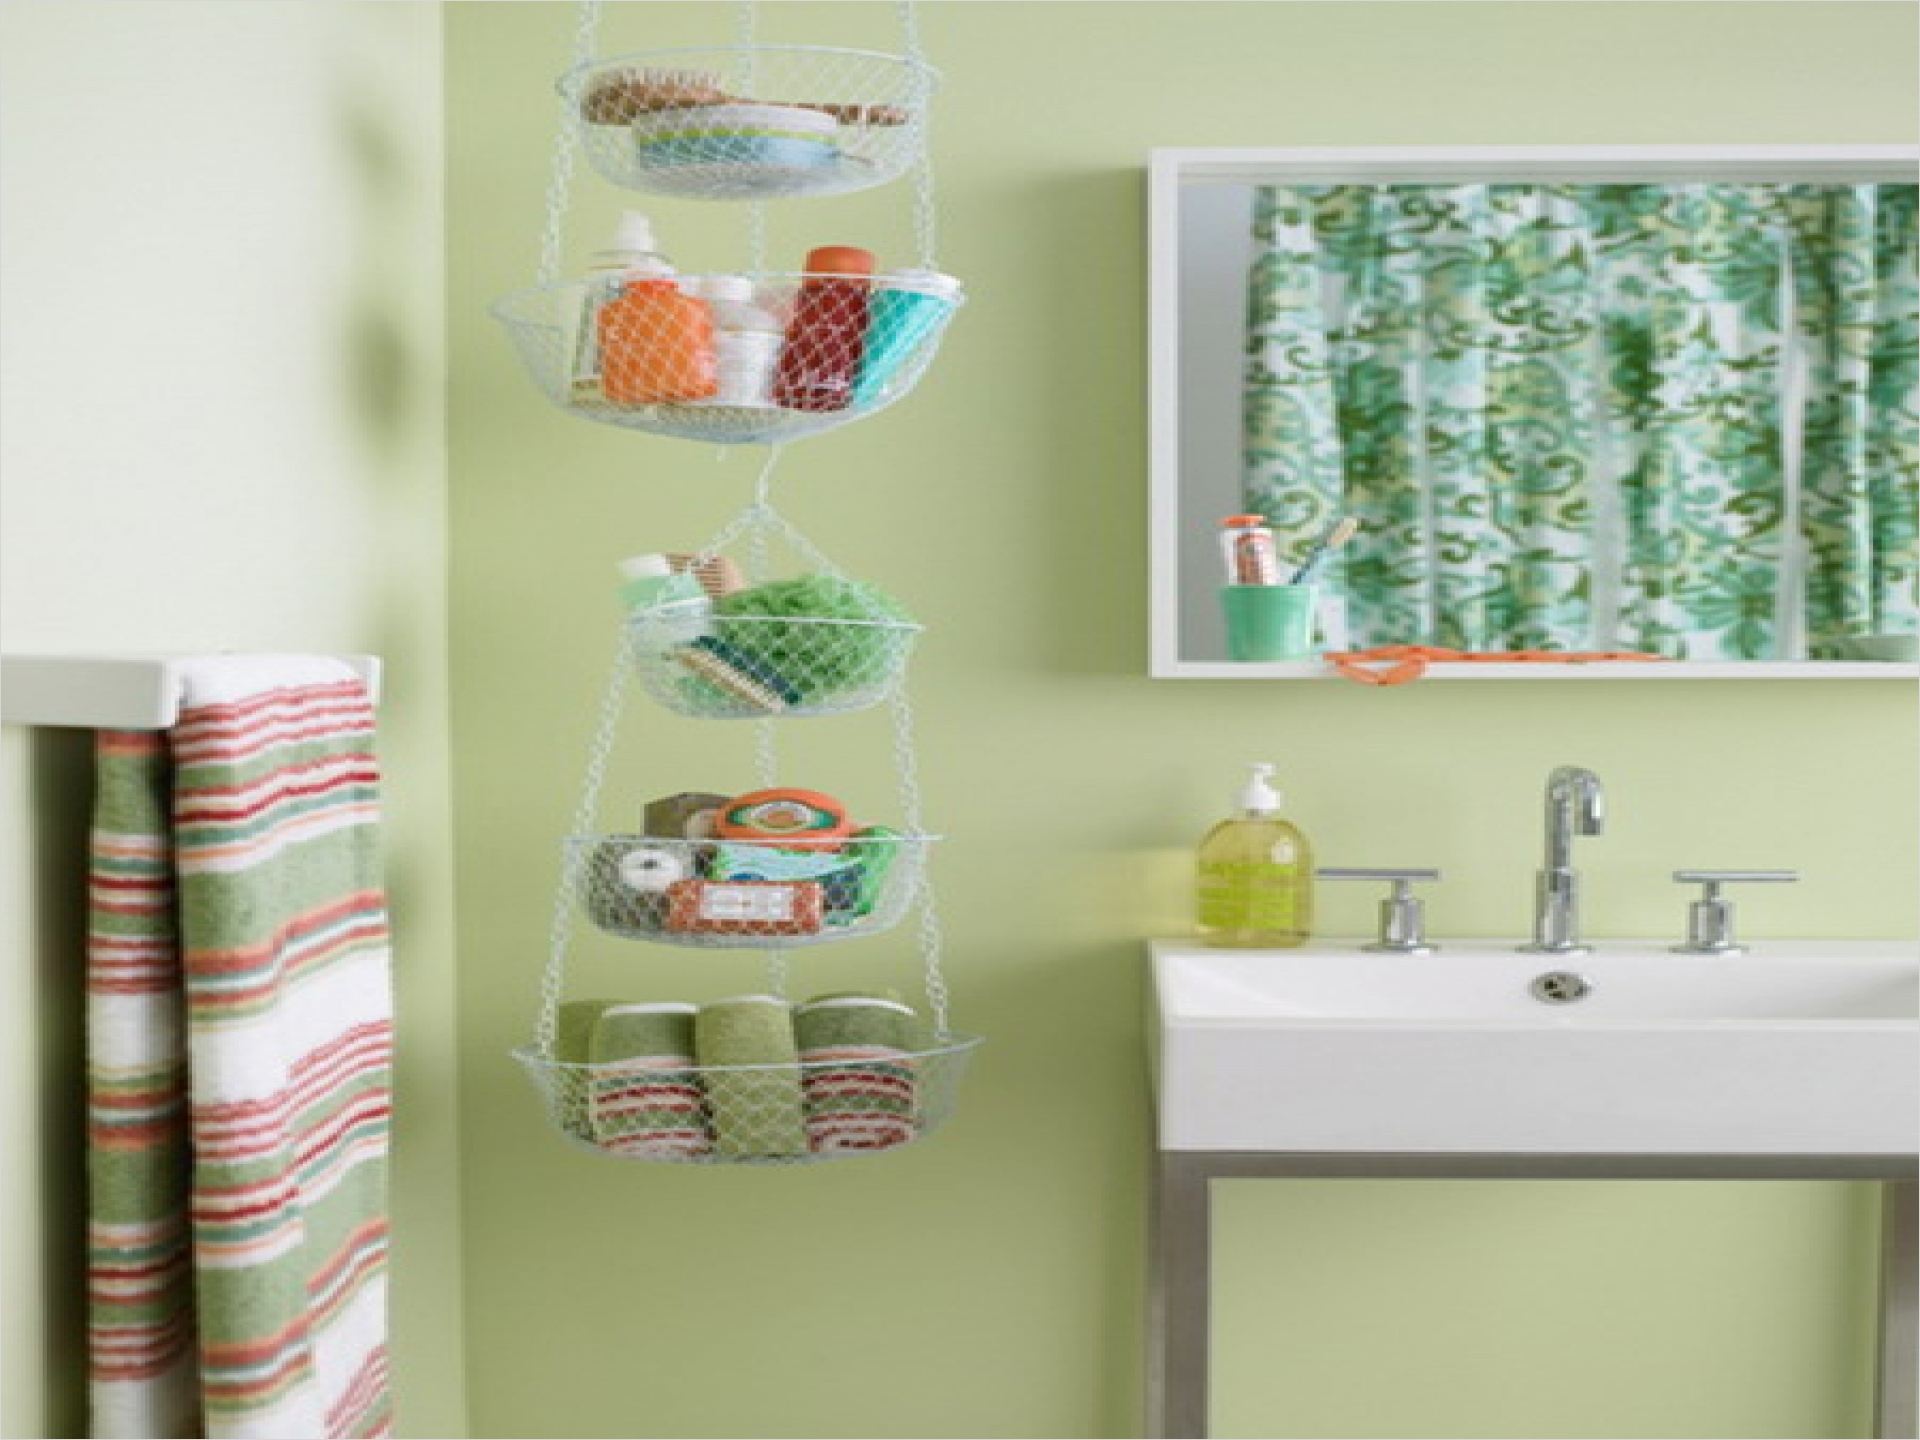 Bathroom Shelves Decorating Ideas 24 Bathroom Storage Archives Bath Fitter Florida O Gorman Brothers 5